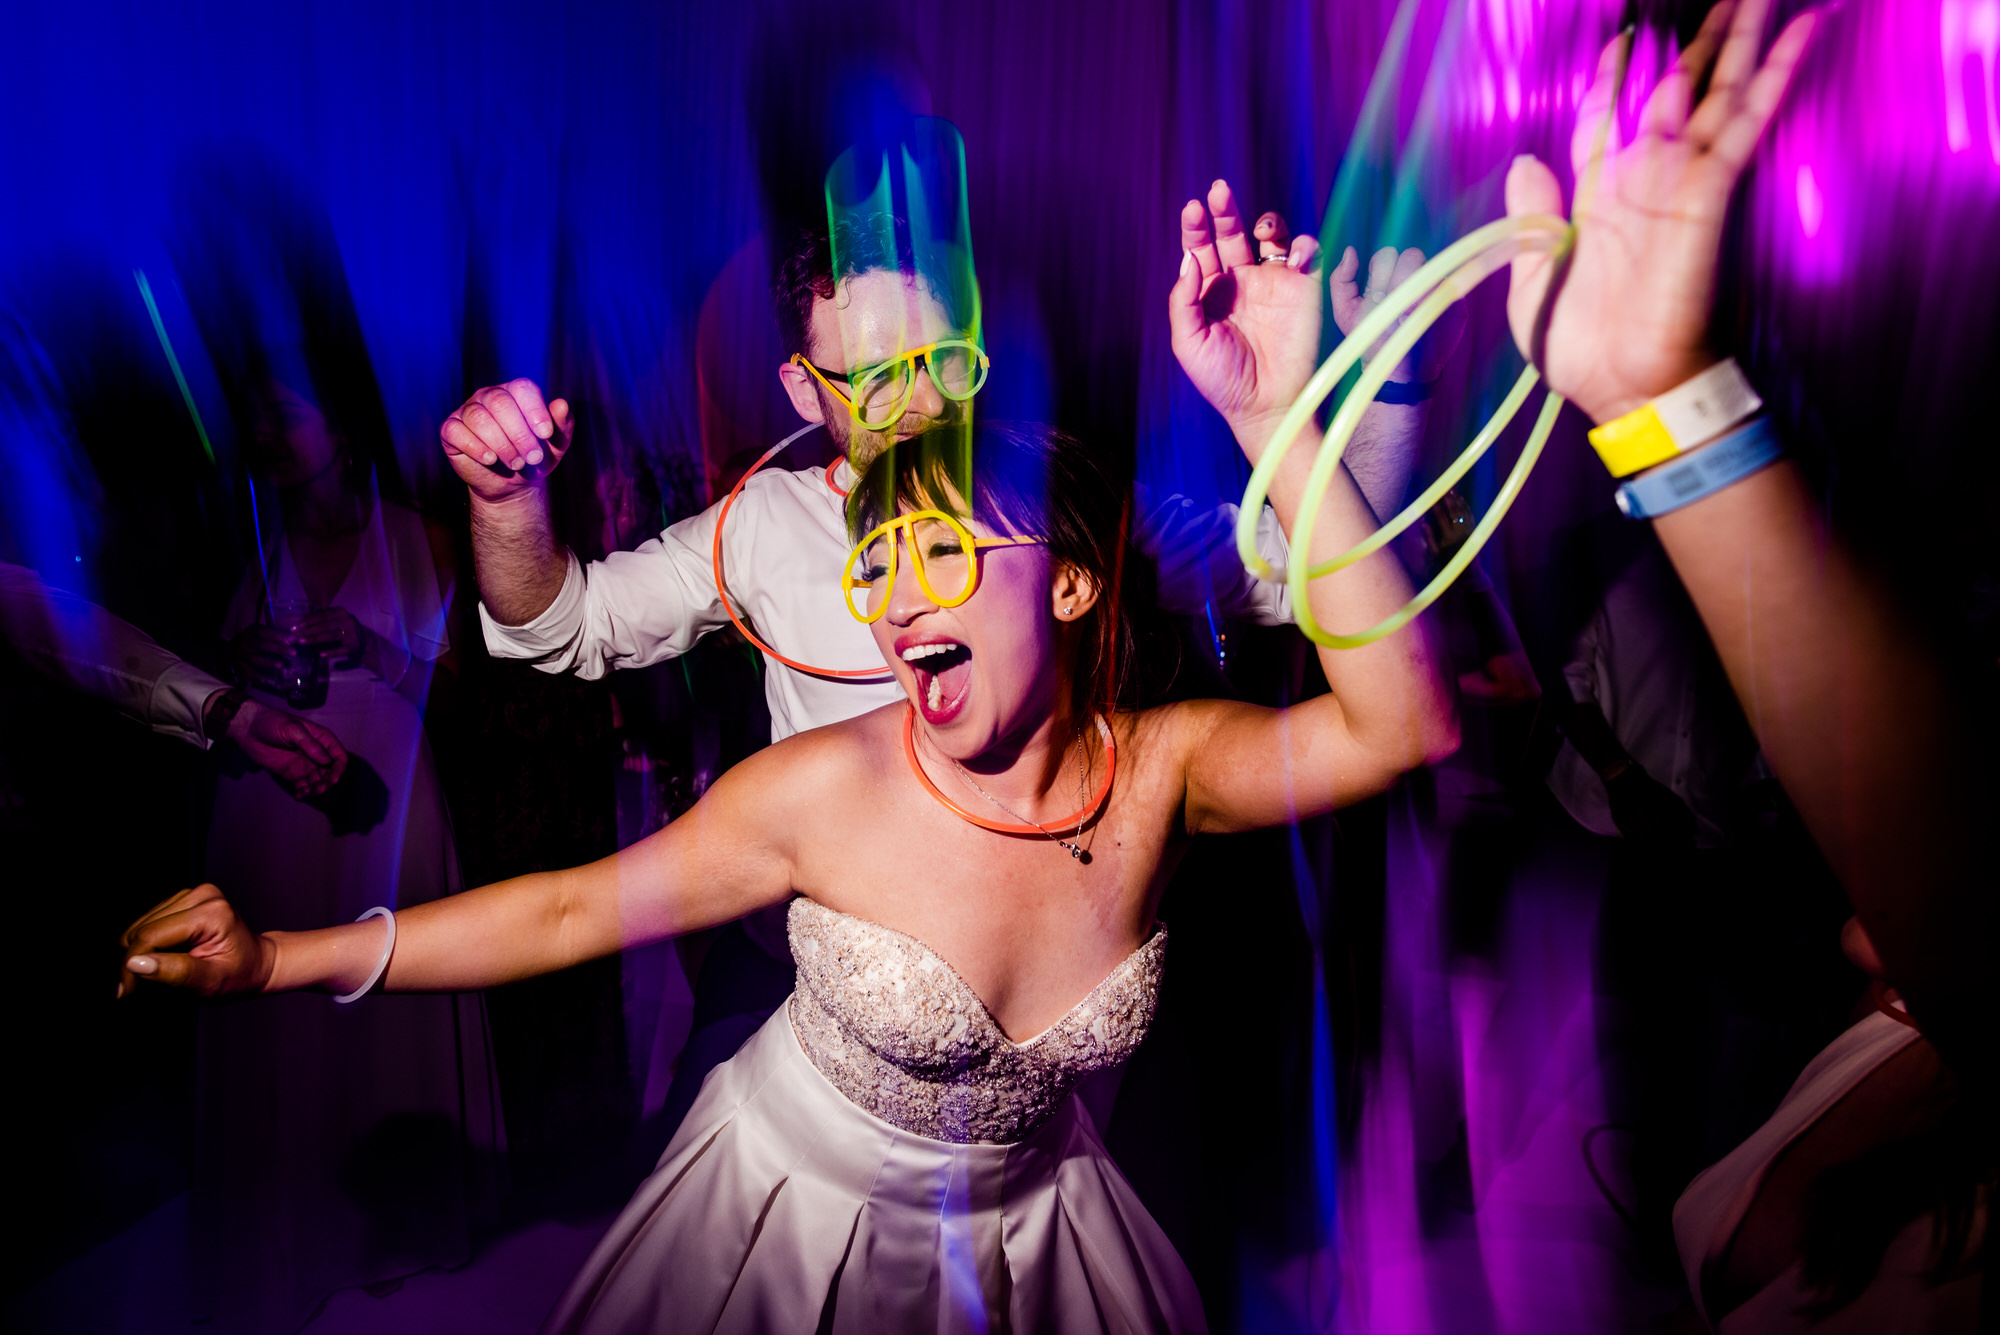 Couple let loose on the dance floor - photo by Ken Pak